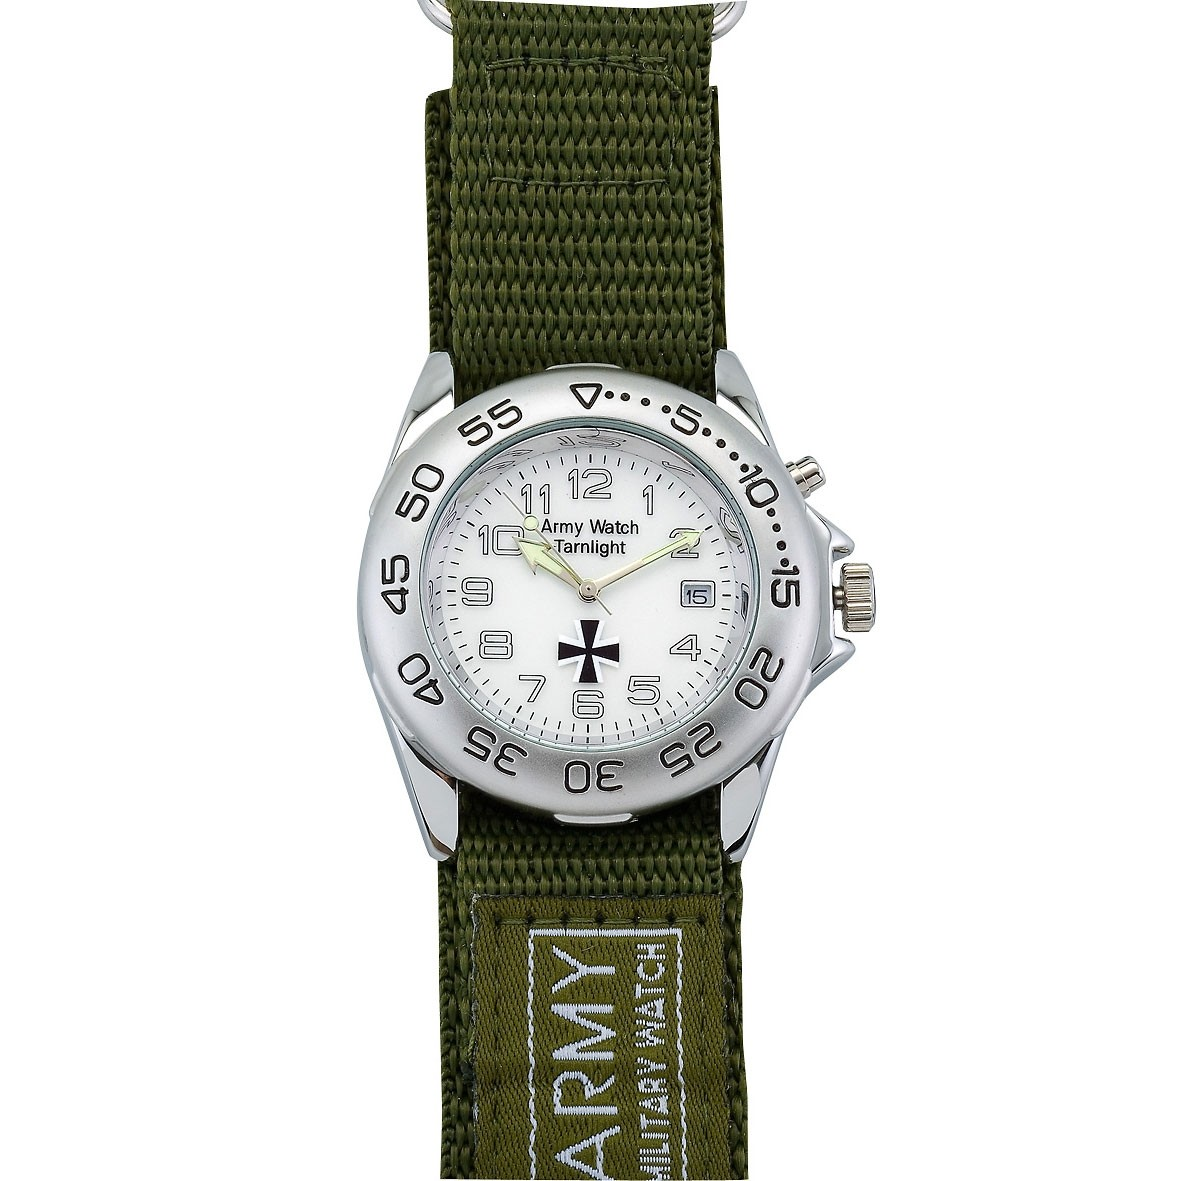 German Army Uhr, Heer (Tarnlight)